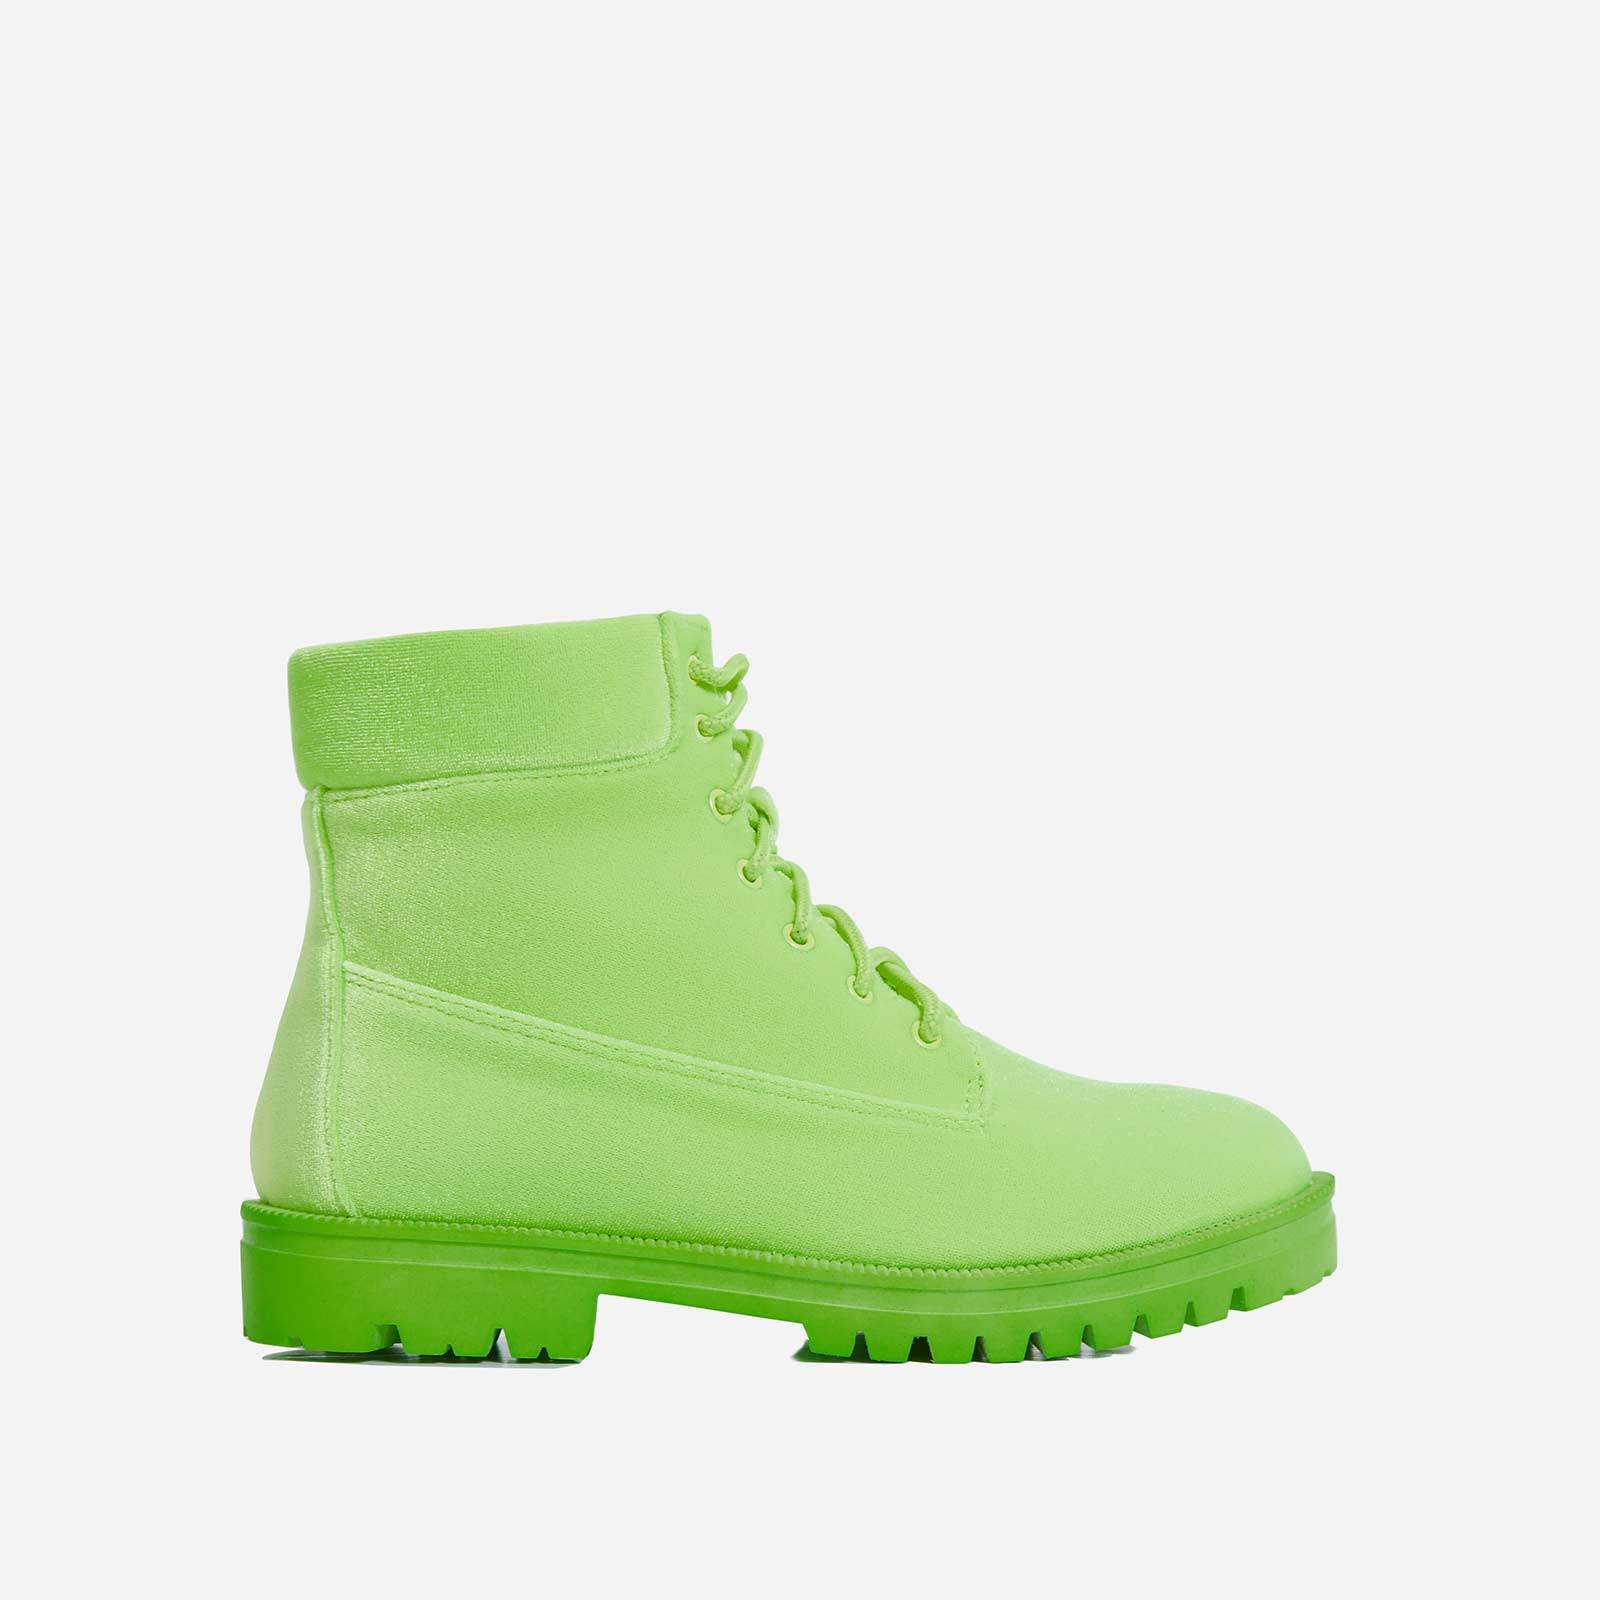 Highlighter Lace Up Ankle Boot In Green Faux Suede